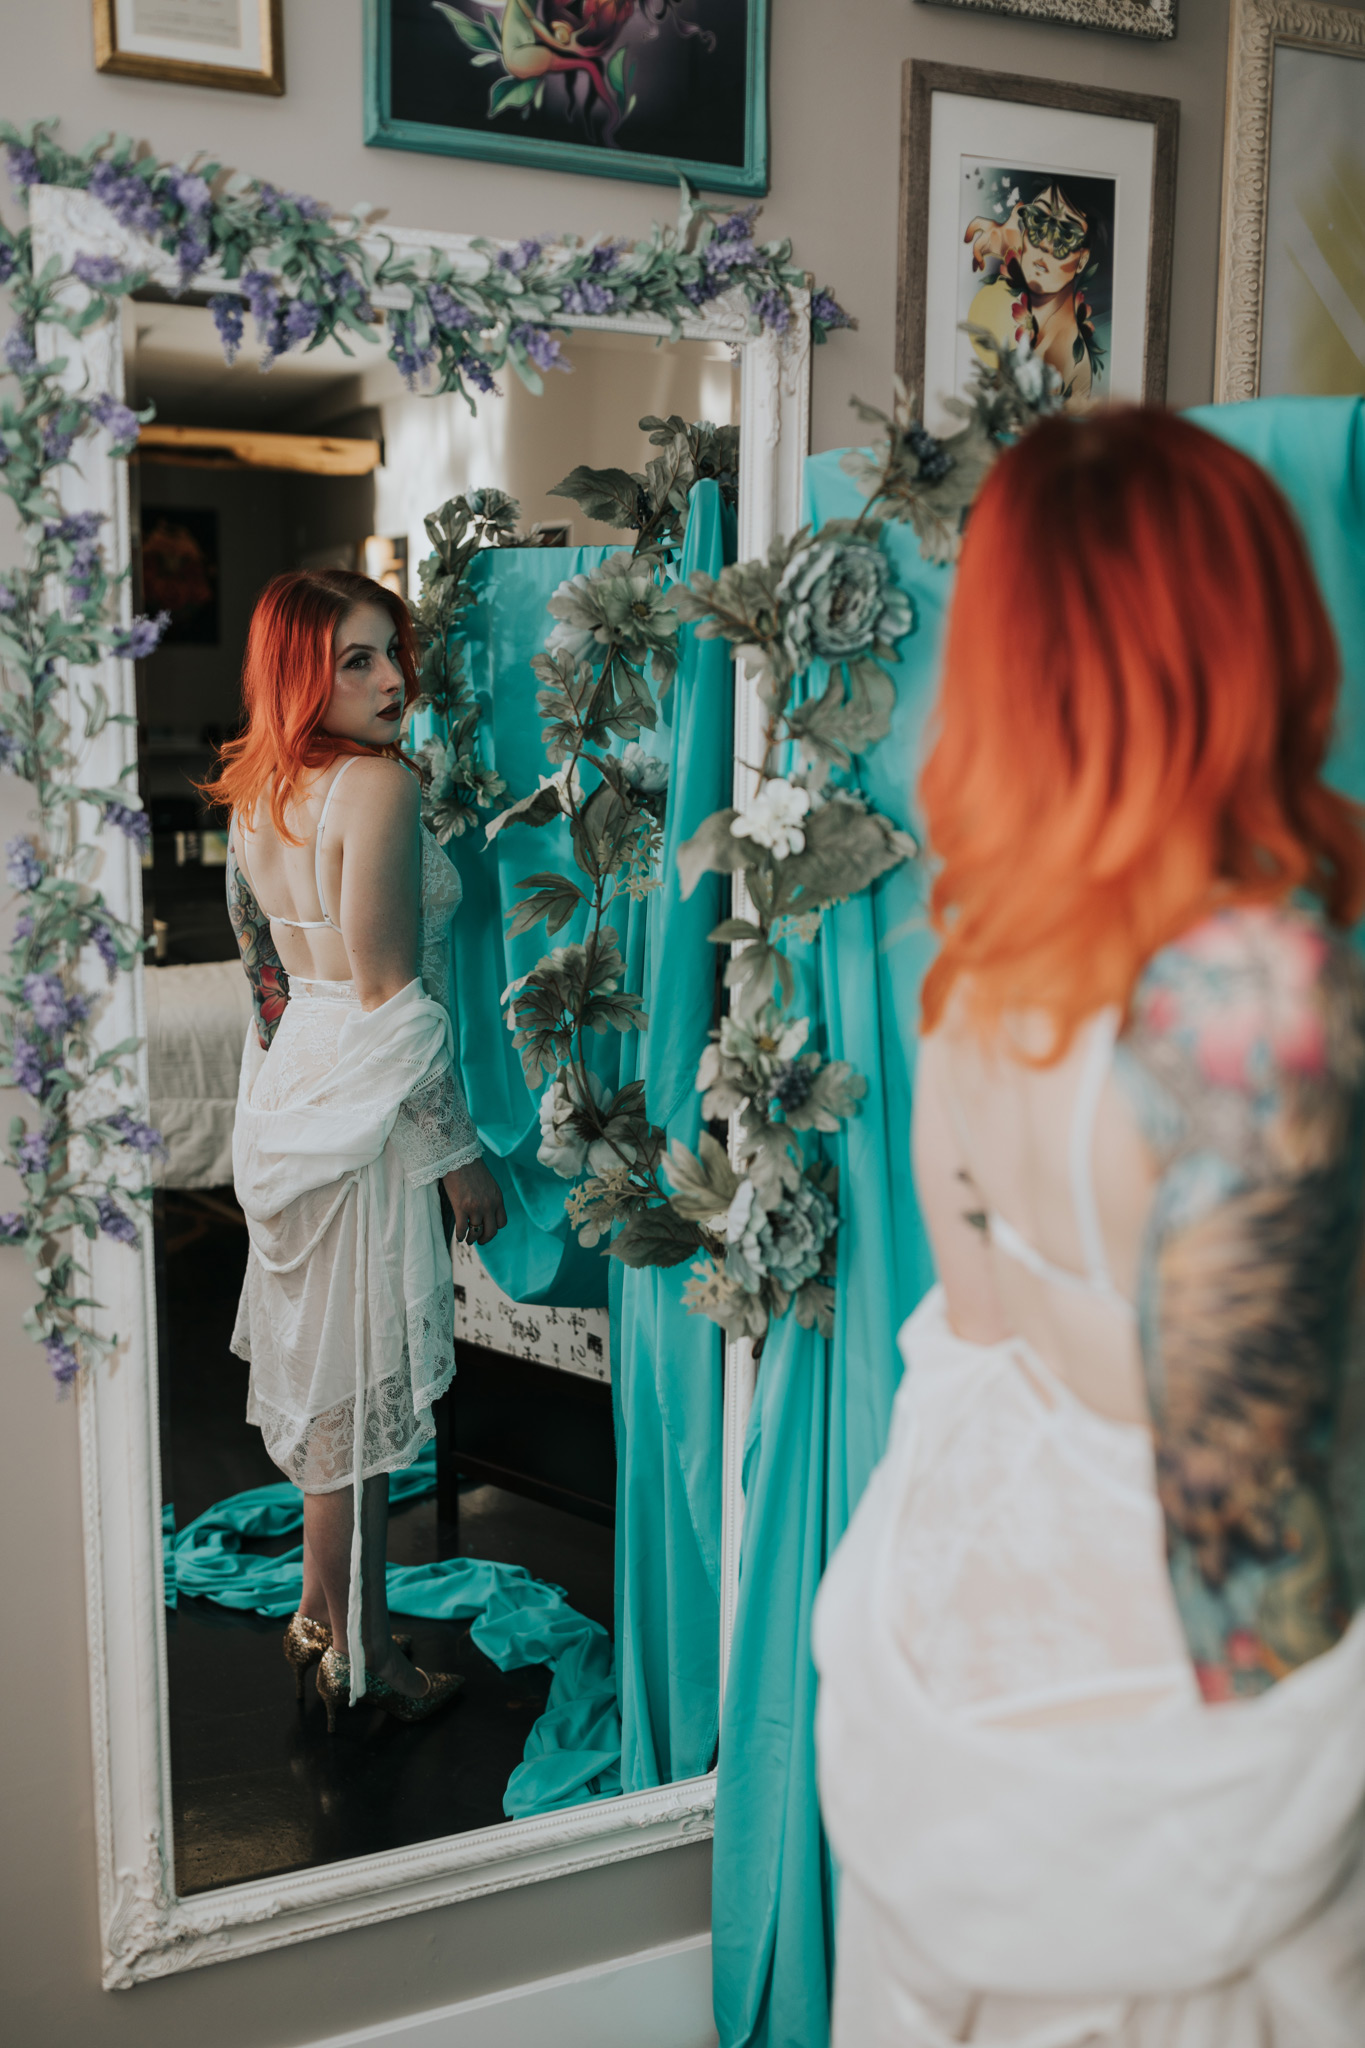 woman standing by mirror reflection bridal boudoir